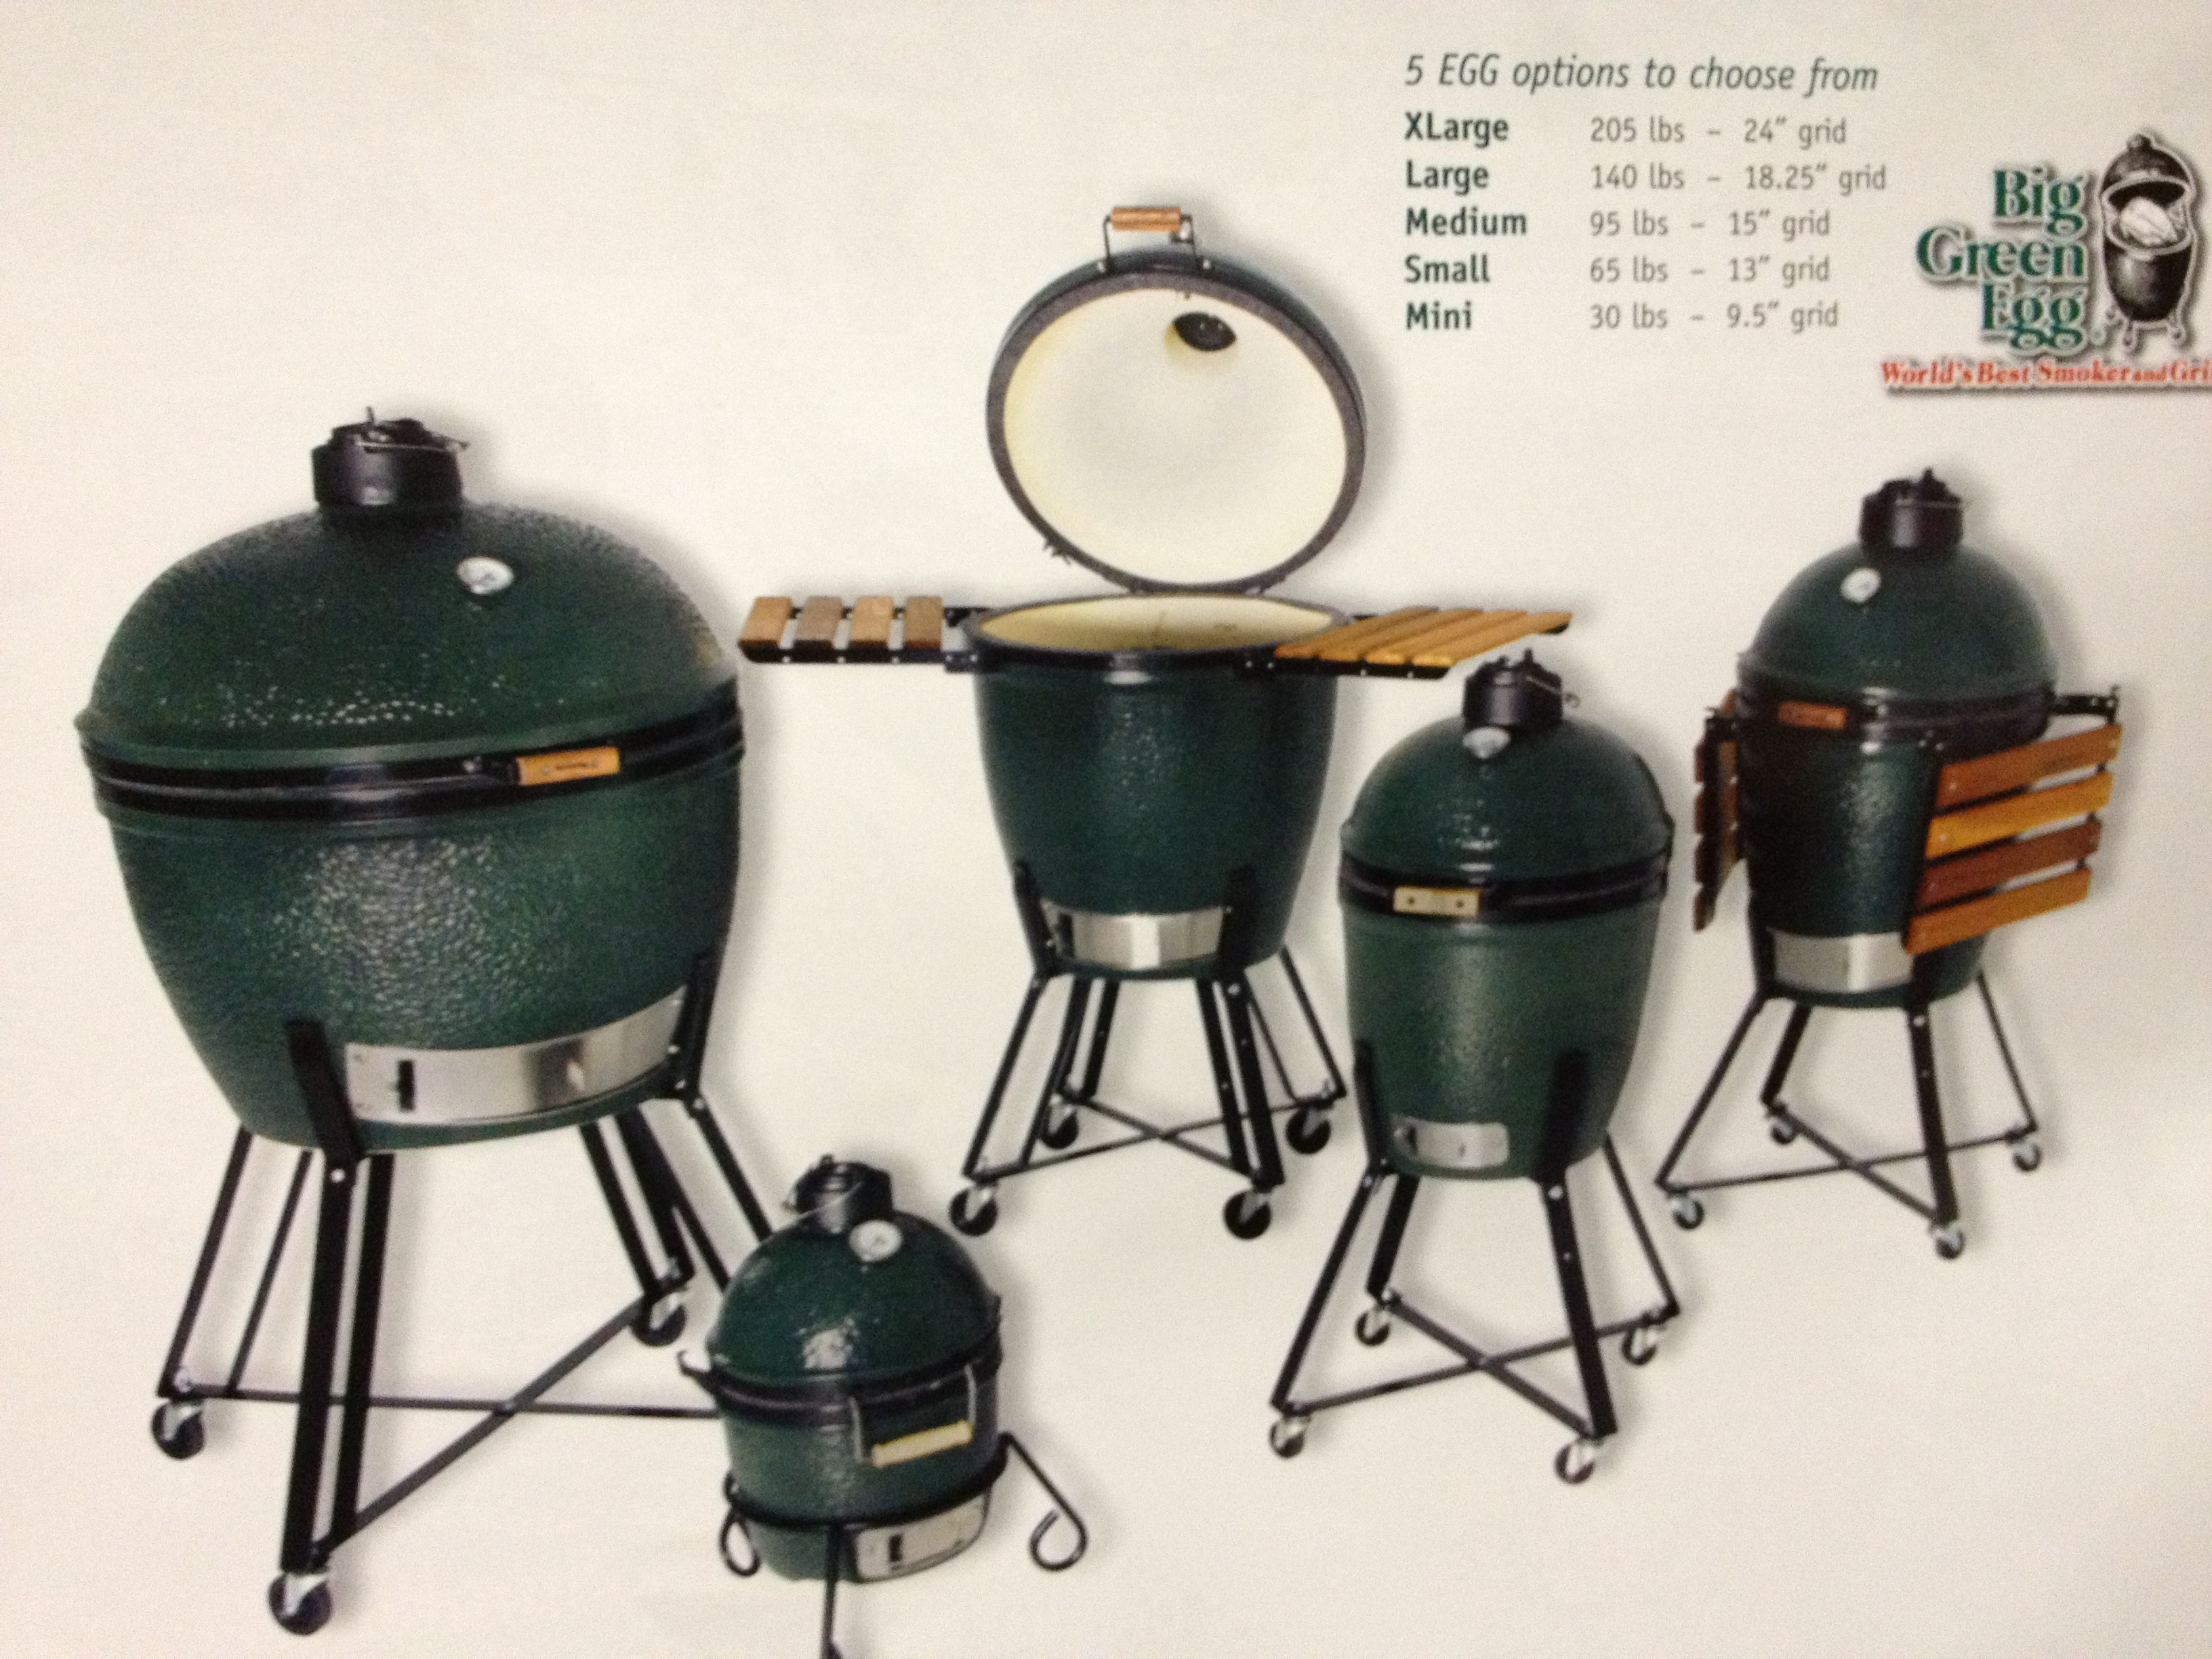 Grills Hot Tubs Fireplaces Patio Furniture Heat 'N Sweep  #976834